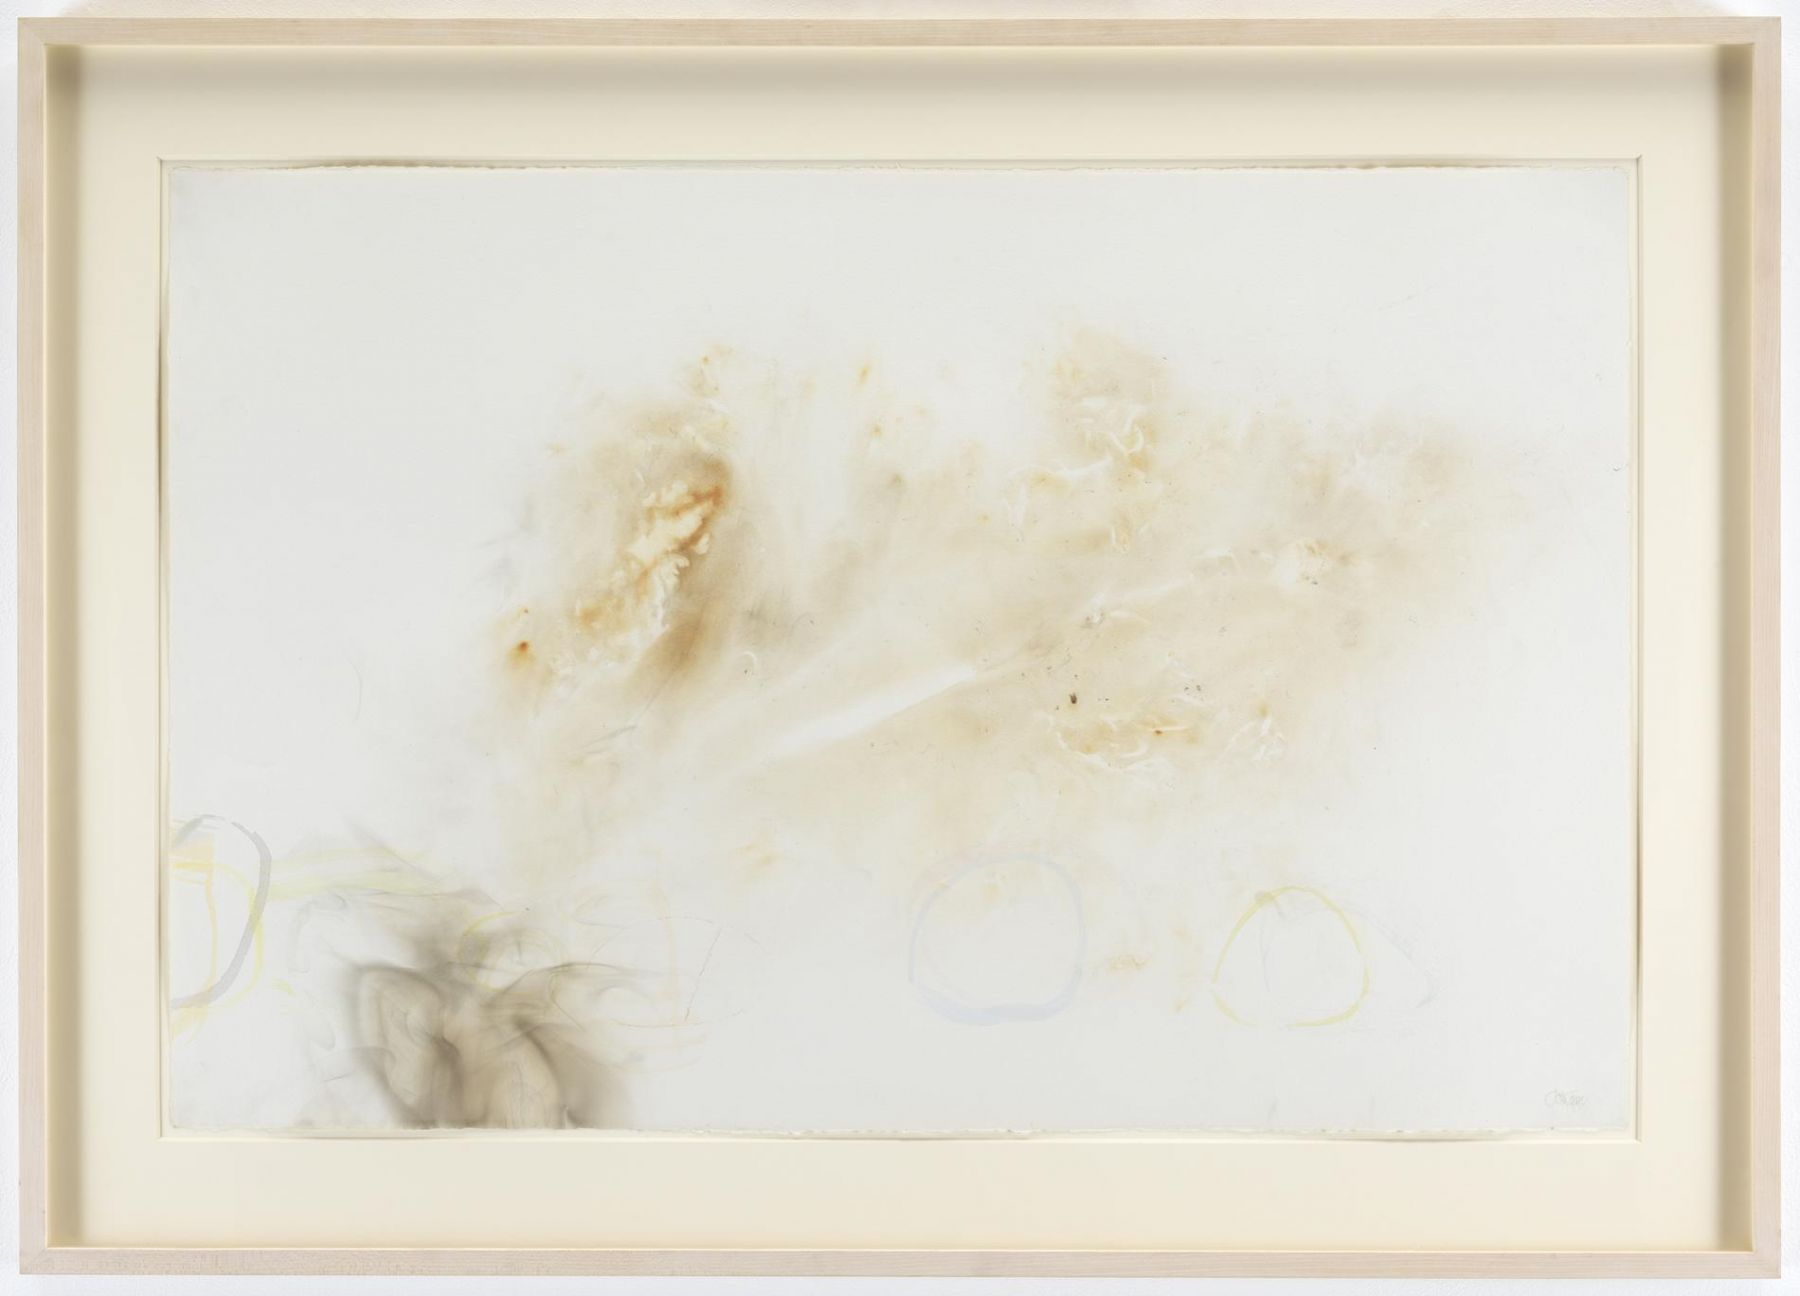 , JOHN CAGERiver Rocks and Smoke, 4/12/90, #11,1990Watercolor on Waterford cold press 260 lb. paper prepared with fire and smoke26 1/2 x 39 1/2 in. (67.3 x 100.3 cm)